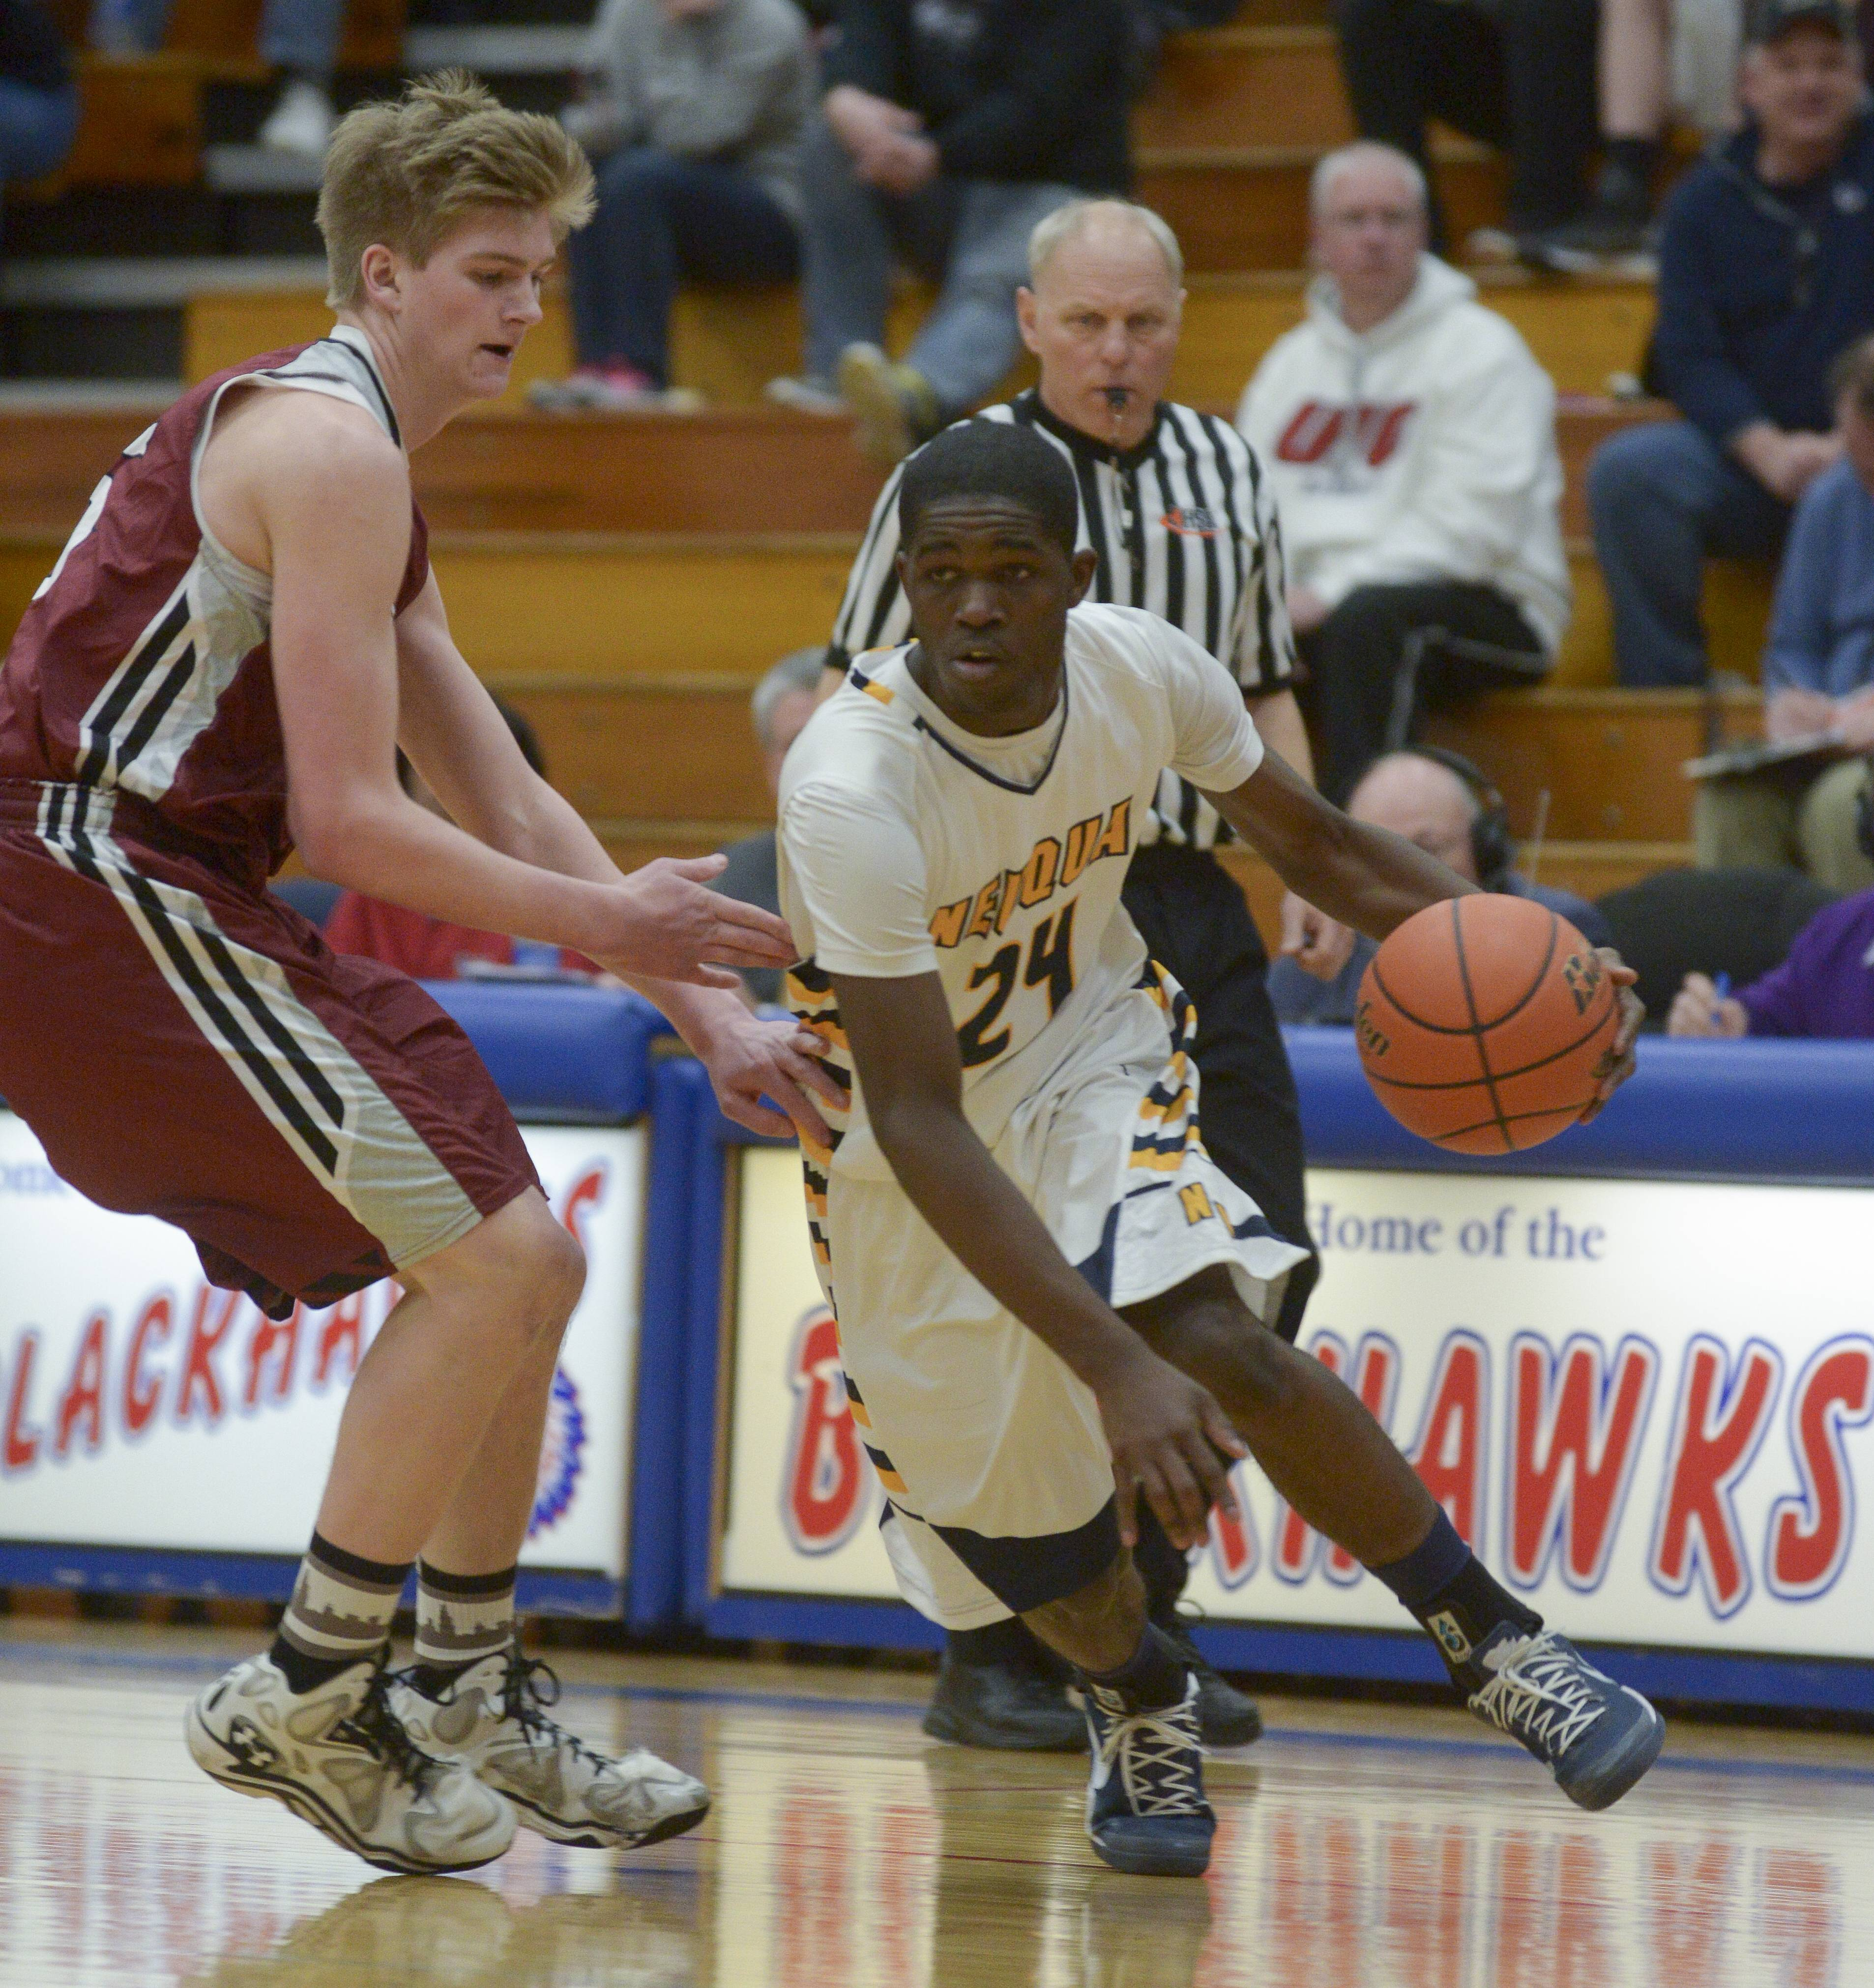 Neuqua Valley's Demond George drives around Plainfield North's Trevor Stumpe .